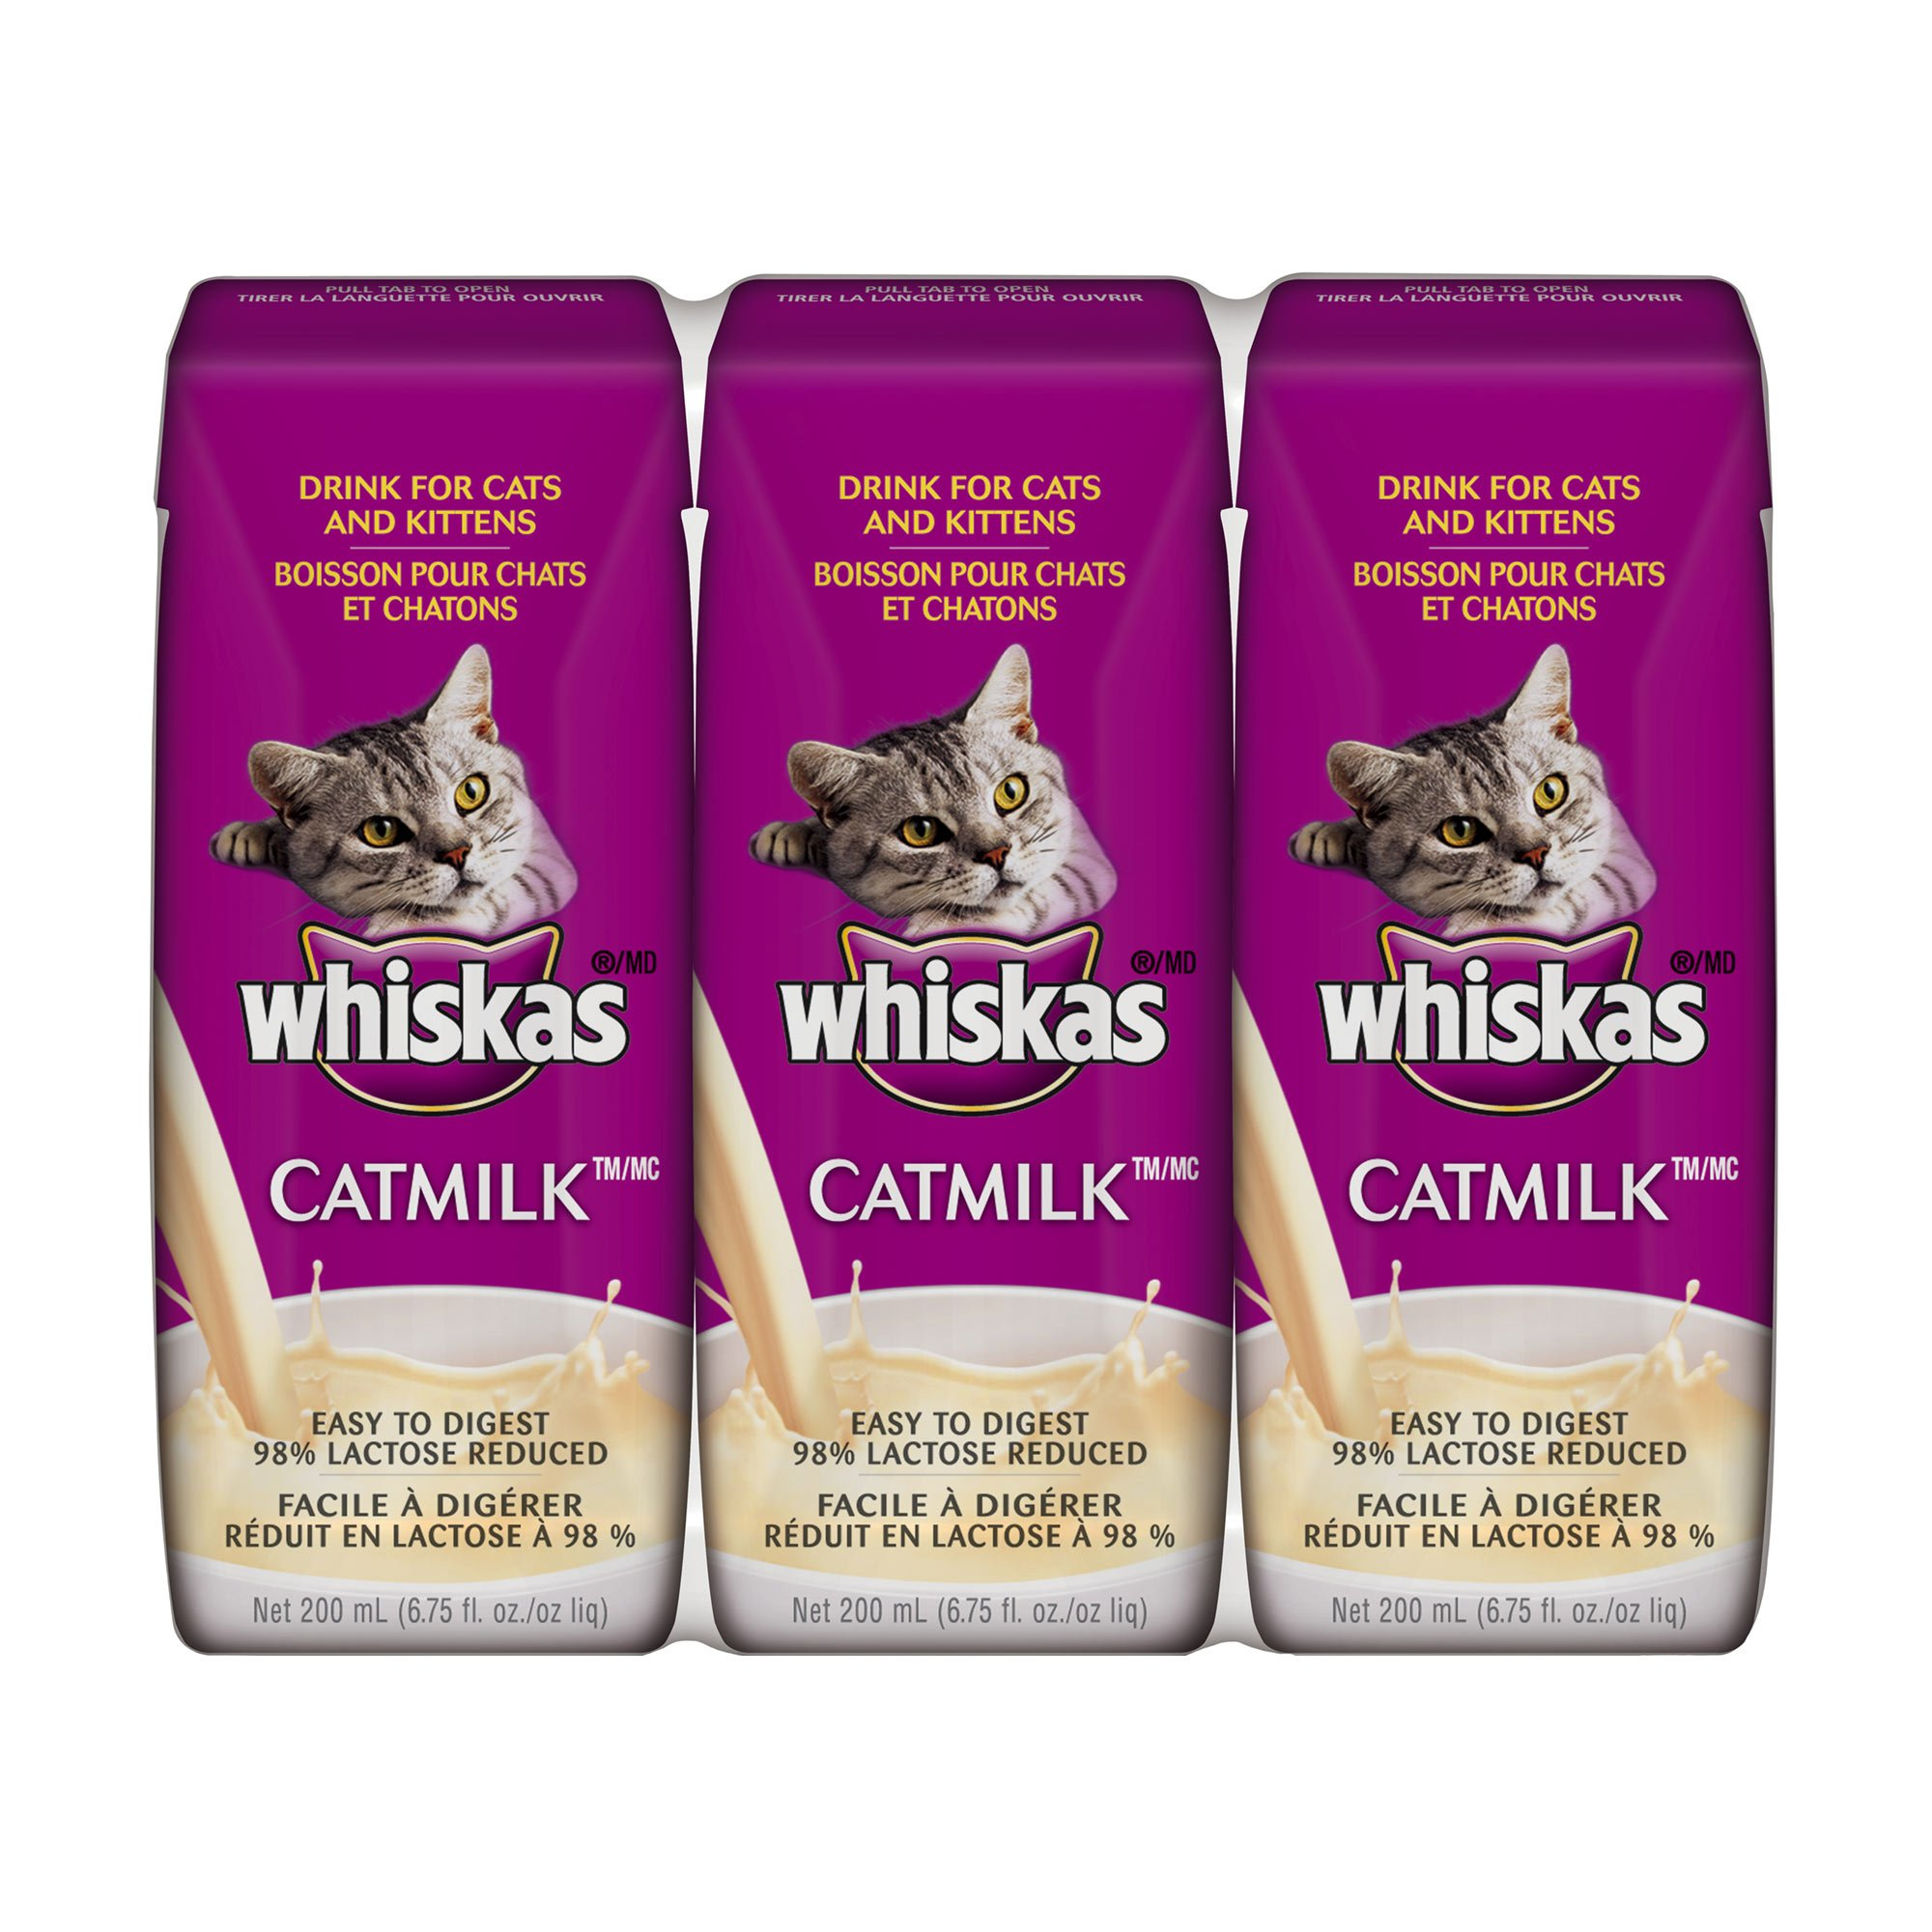 WHISKAS CATMILK PLUS Drink for Cats and Kittens 6.75 Ounces (Eight 3-Count Boxes)